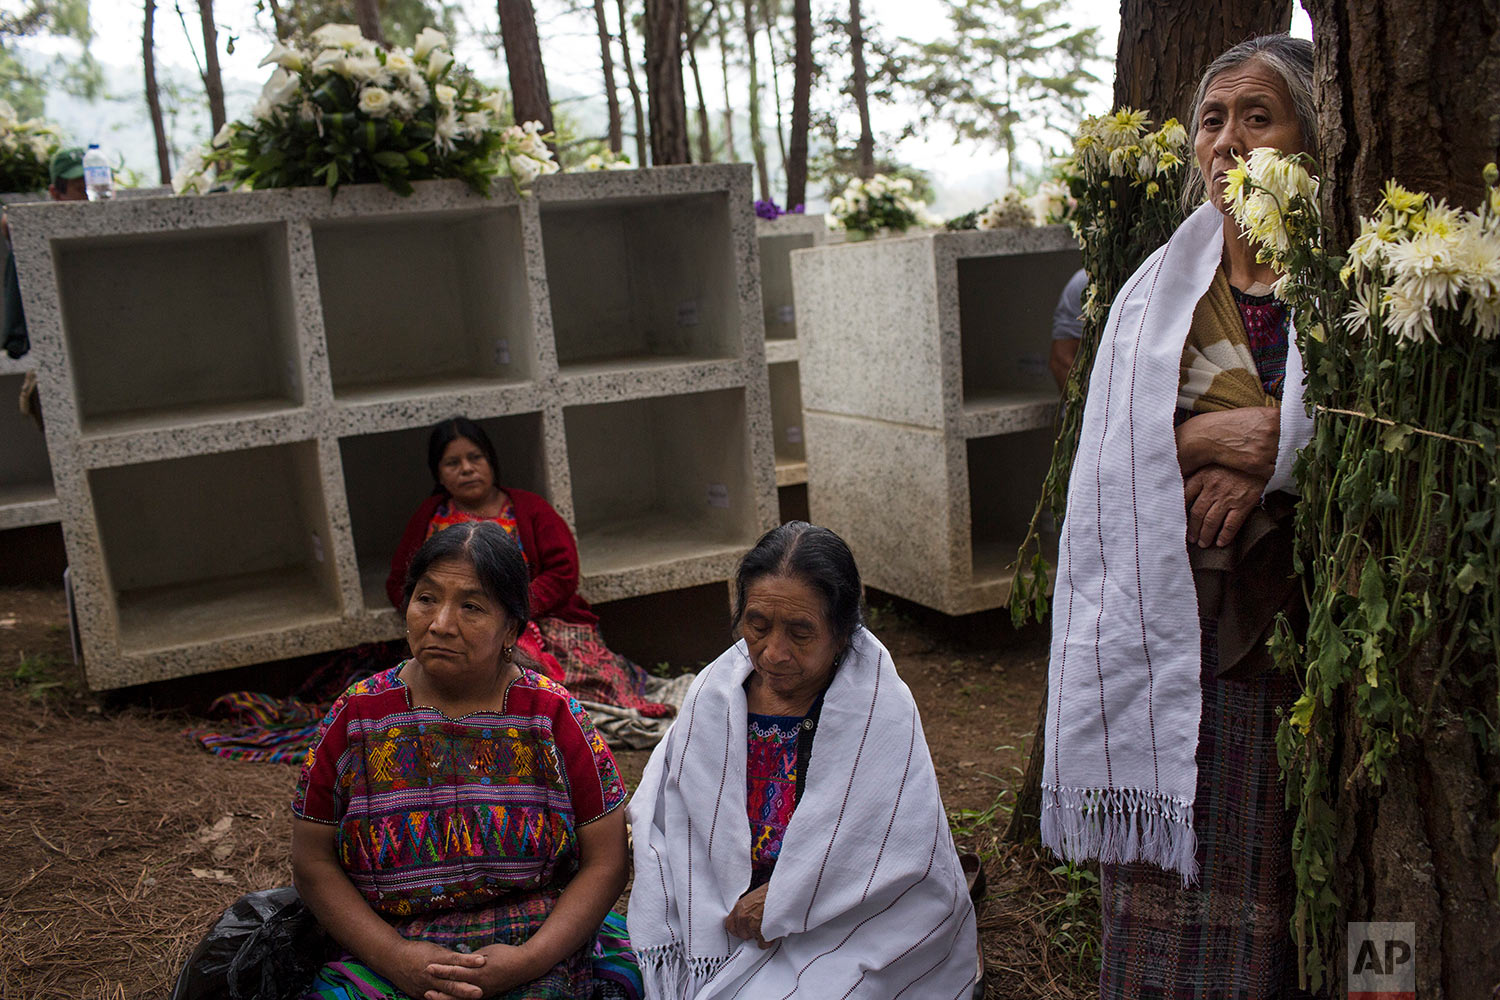 In this June 21, 2018 photo, women attend the funeral ceremony for 172 unidentified people who were discovered buried at what was once a military camp, during their proper burial ceremony at the same spot where they were found in San Juan Comalapa, Guatemala. (AP Photo/Rodrigo Abd)